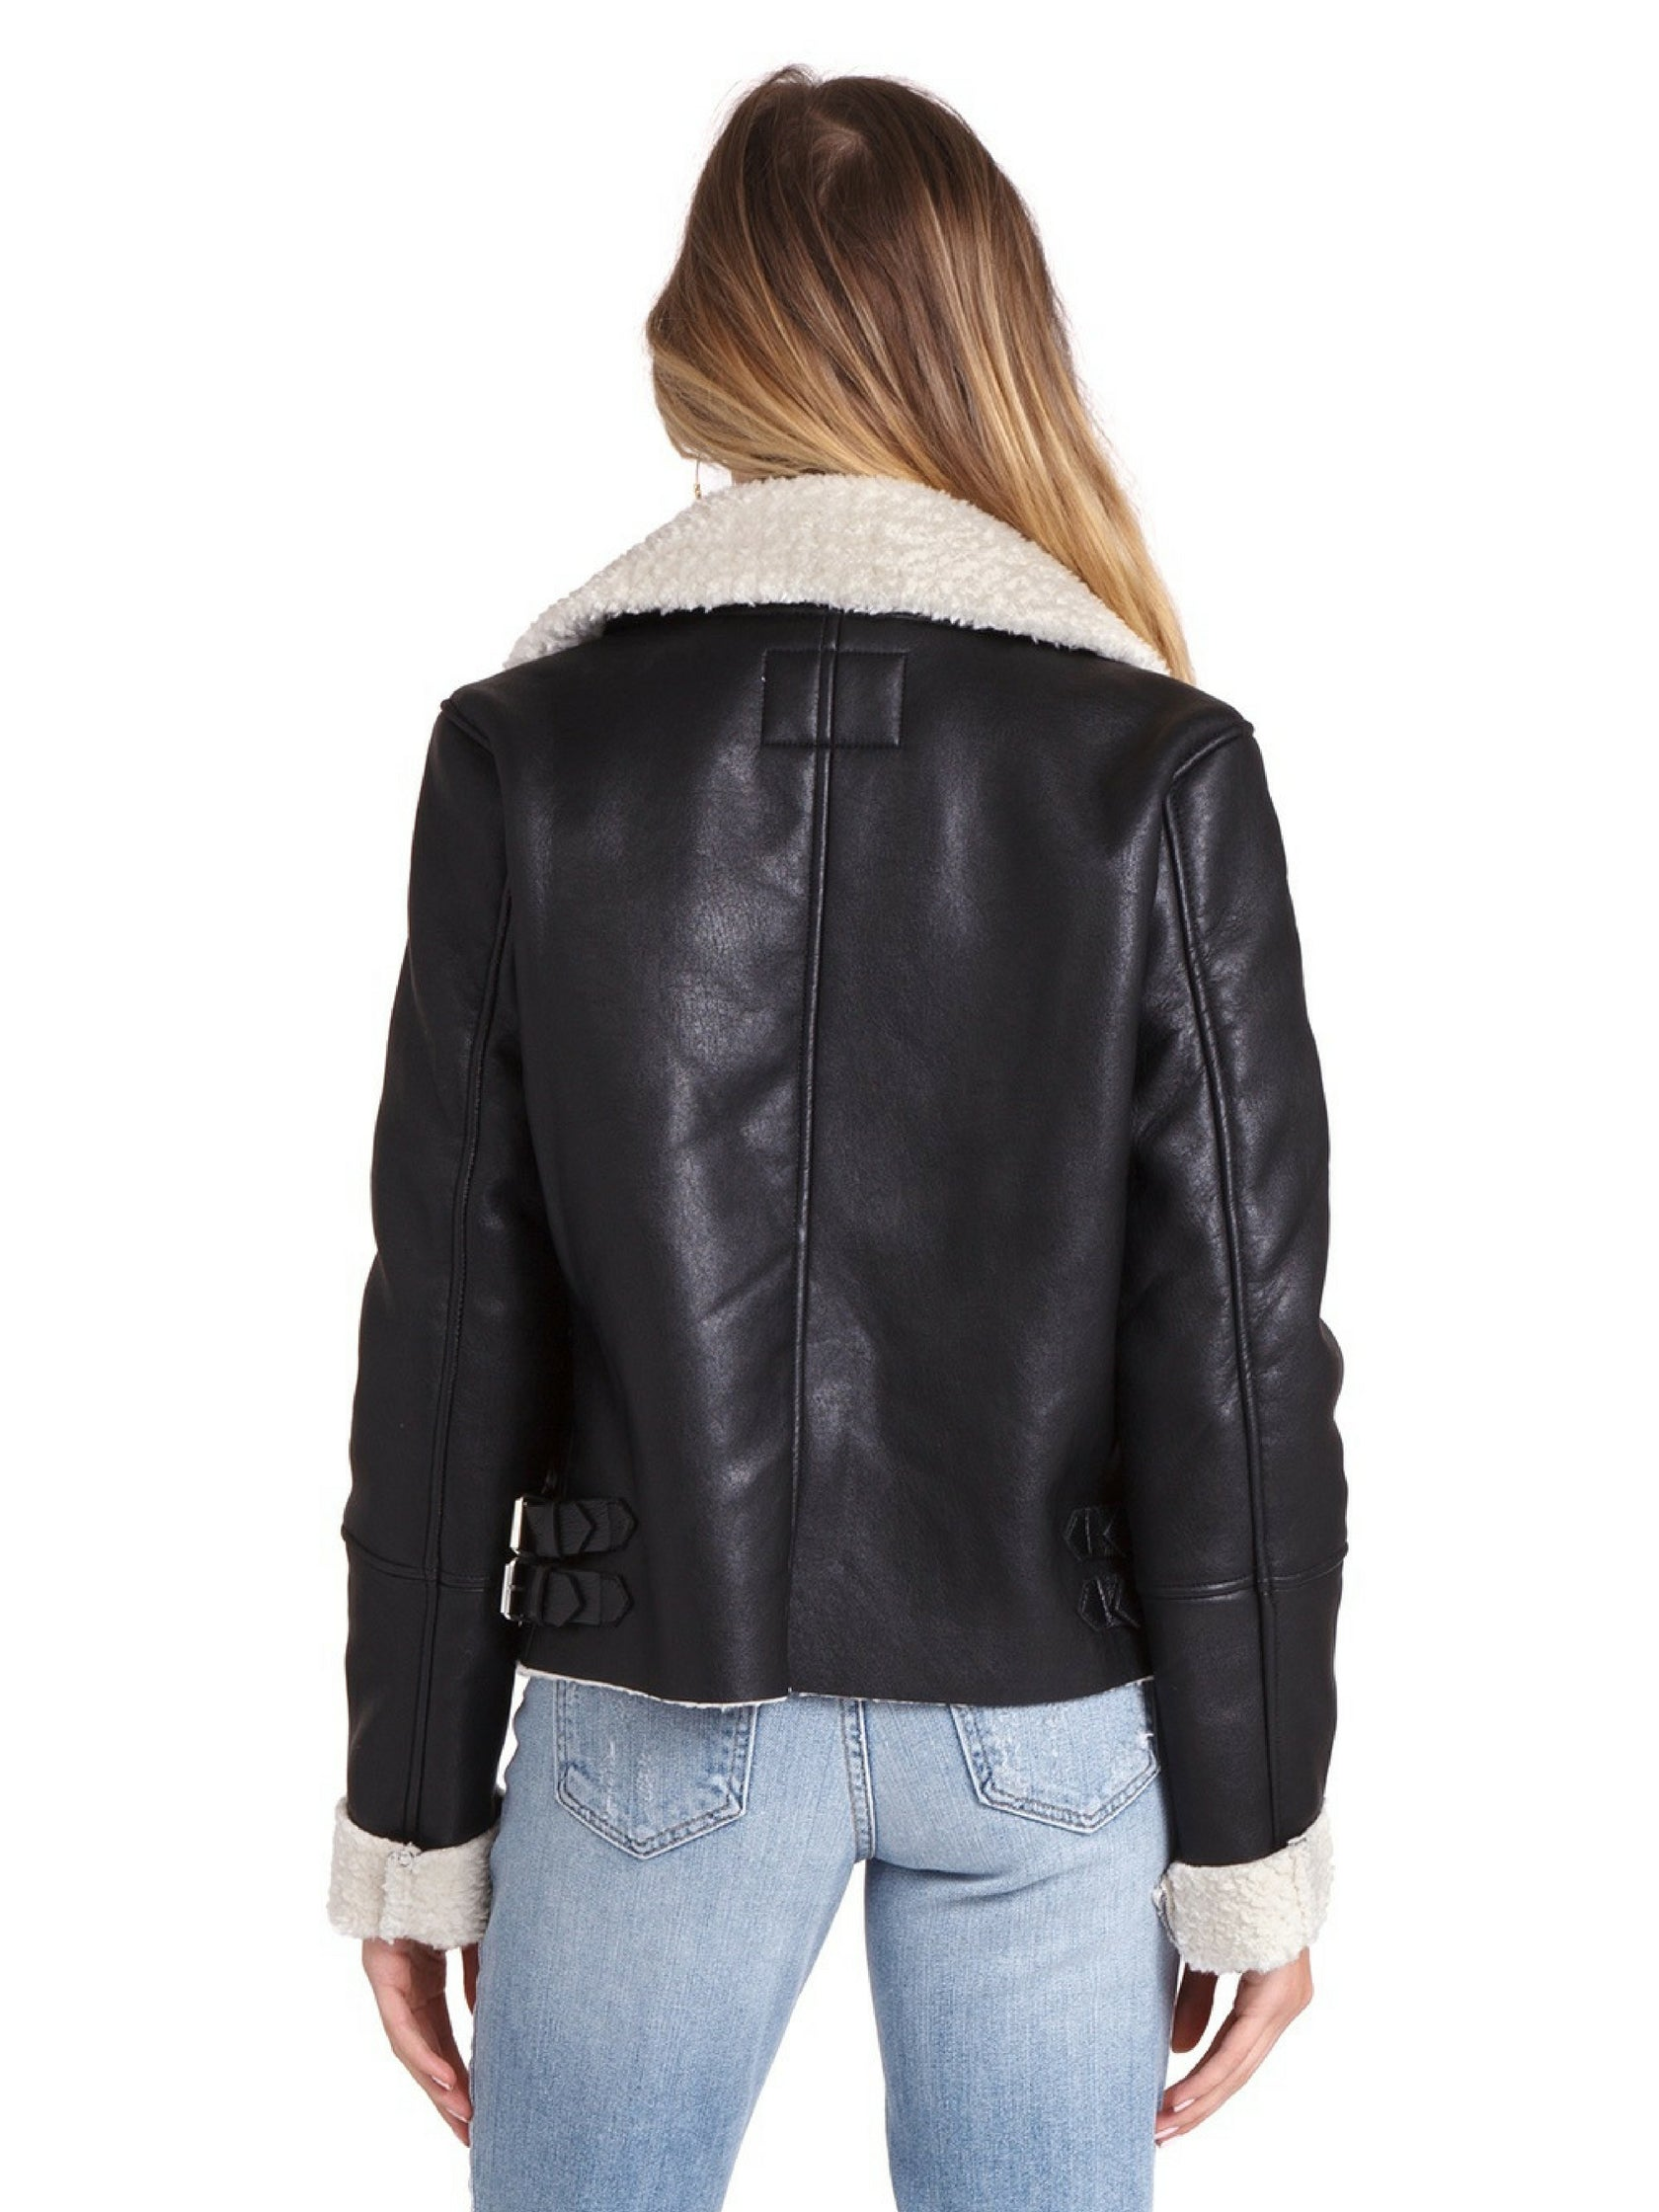 Women outfit in a jacket rental from BLANKNYC called Silent Night Jacket